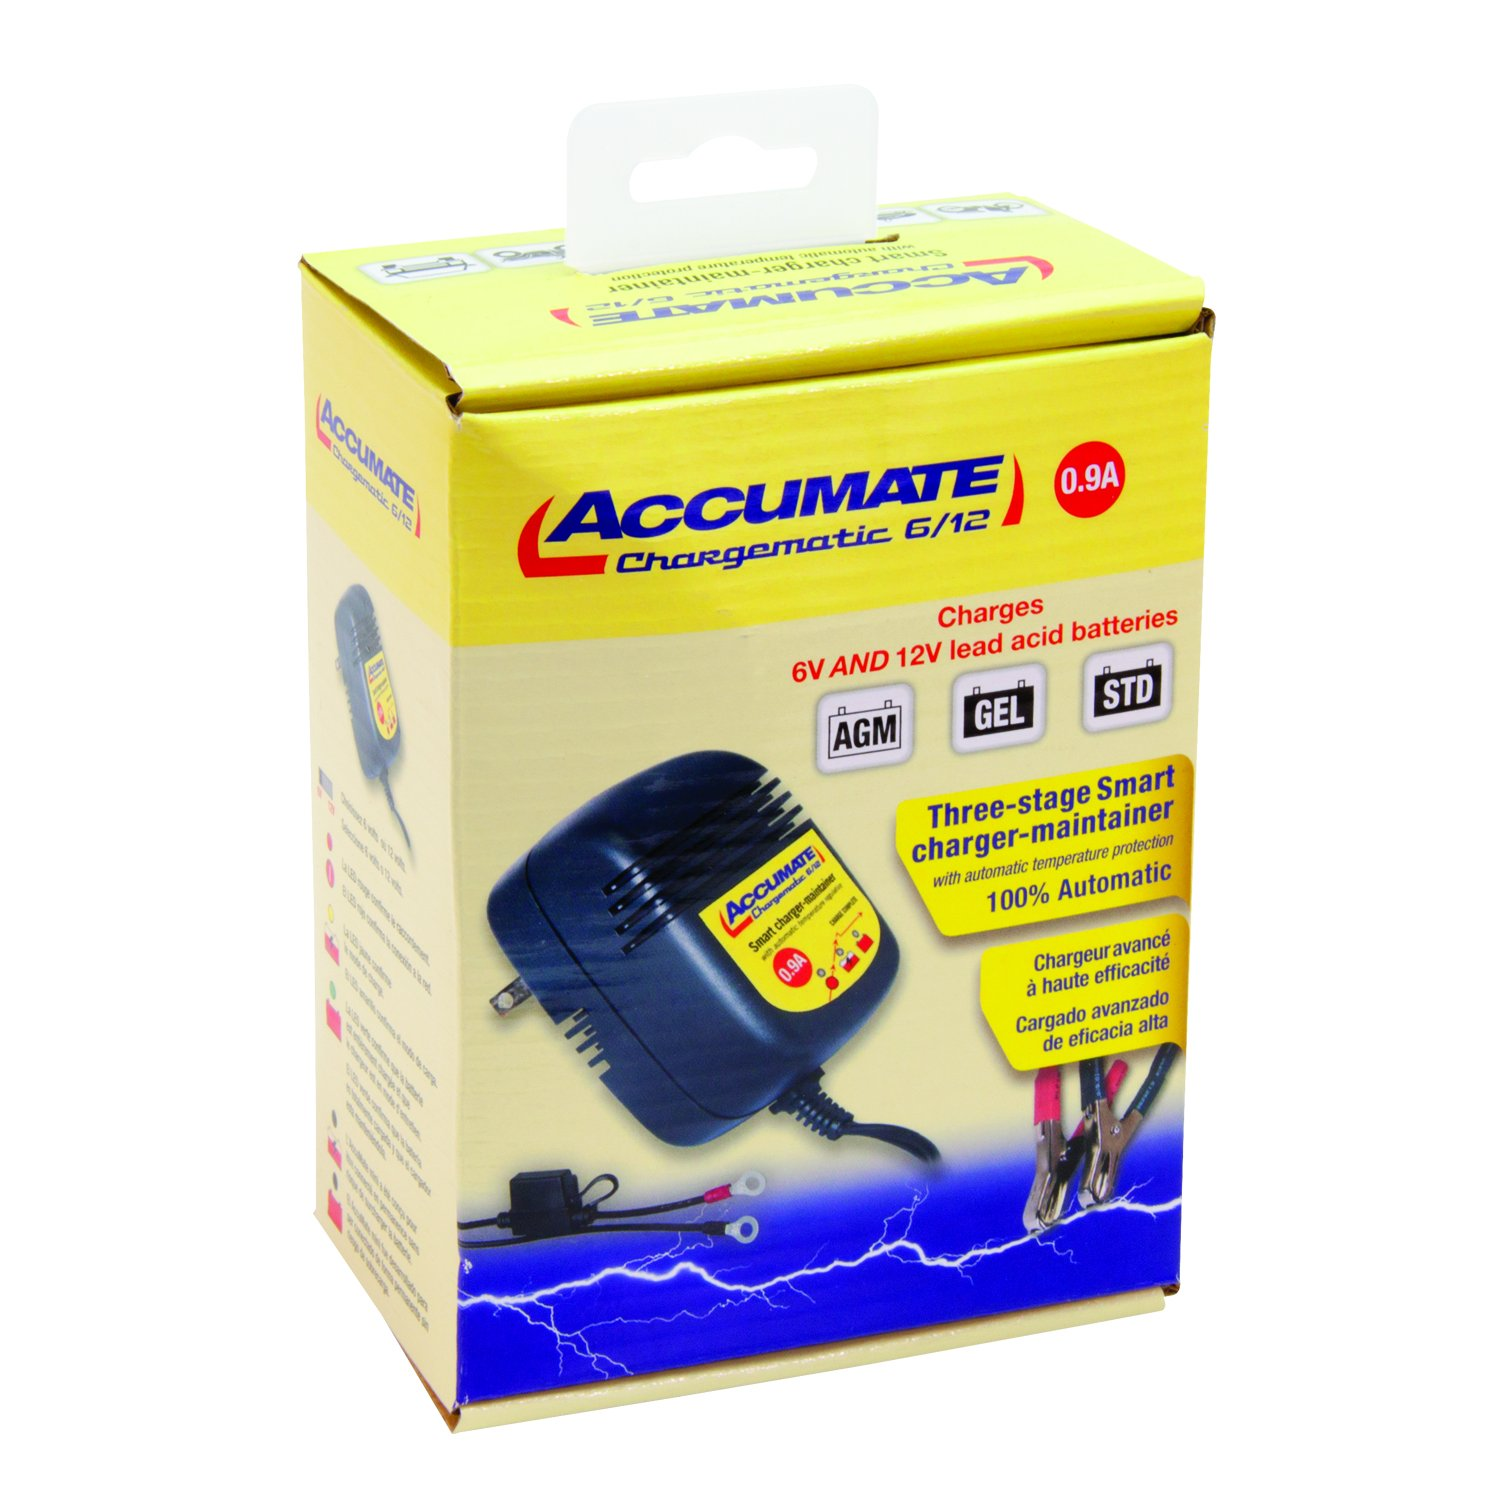 Accumate 6 12 12a Tm 08 4 Step 6v 12v Chargematic Car Battery Charger Maintainer 750ma Lead Acid Automotive